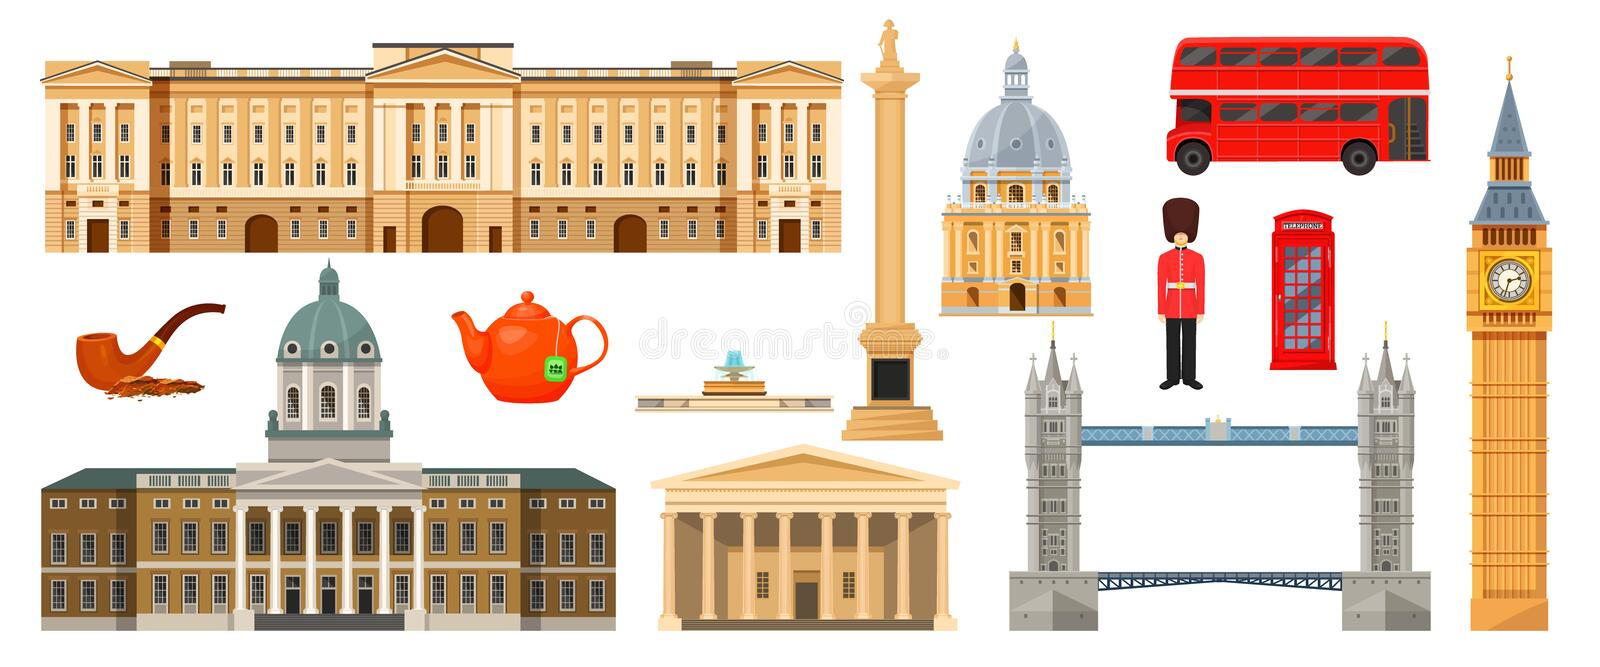 Culture, buildings and attractions of London, Great Britain, United Kingdom. Culture, landmarks, attractions of London, Great Britain, United Kingdom. Museum stock illustration